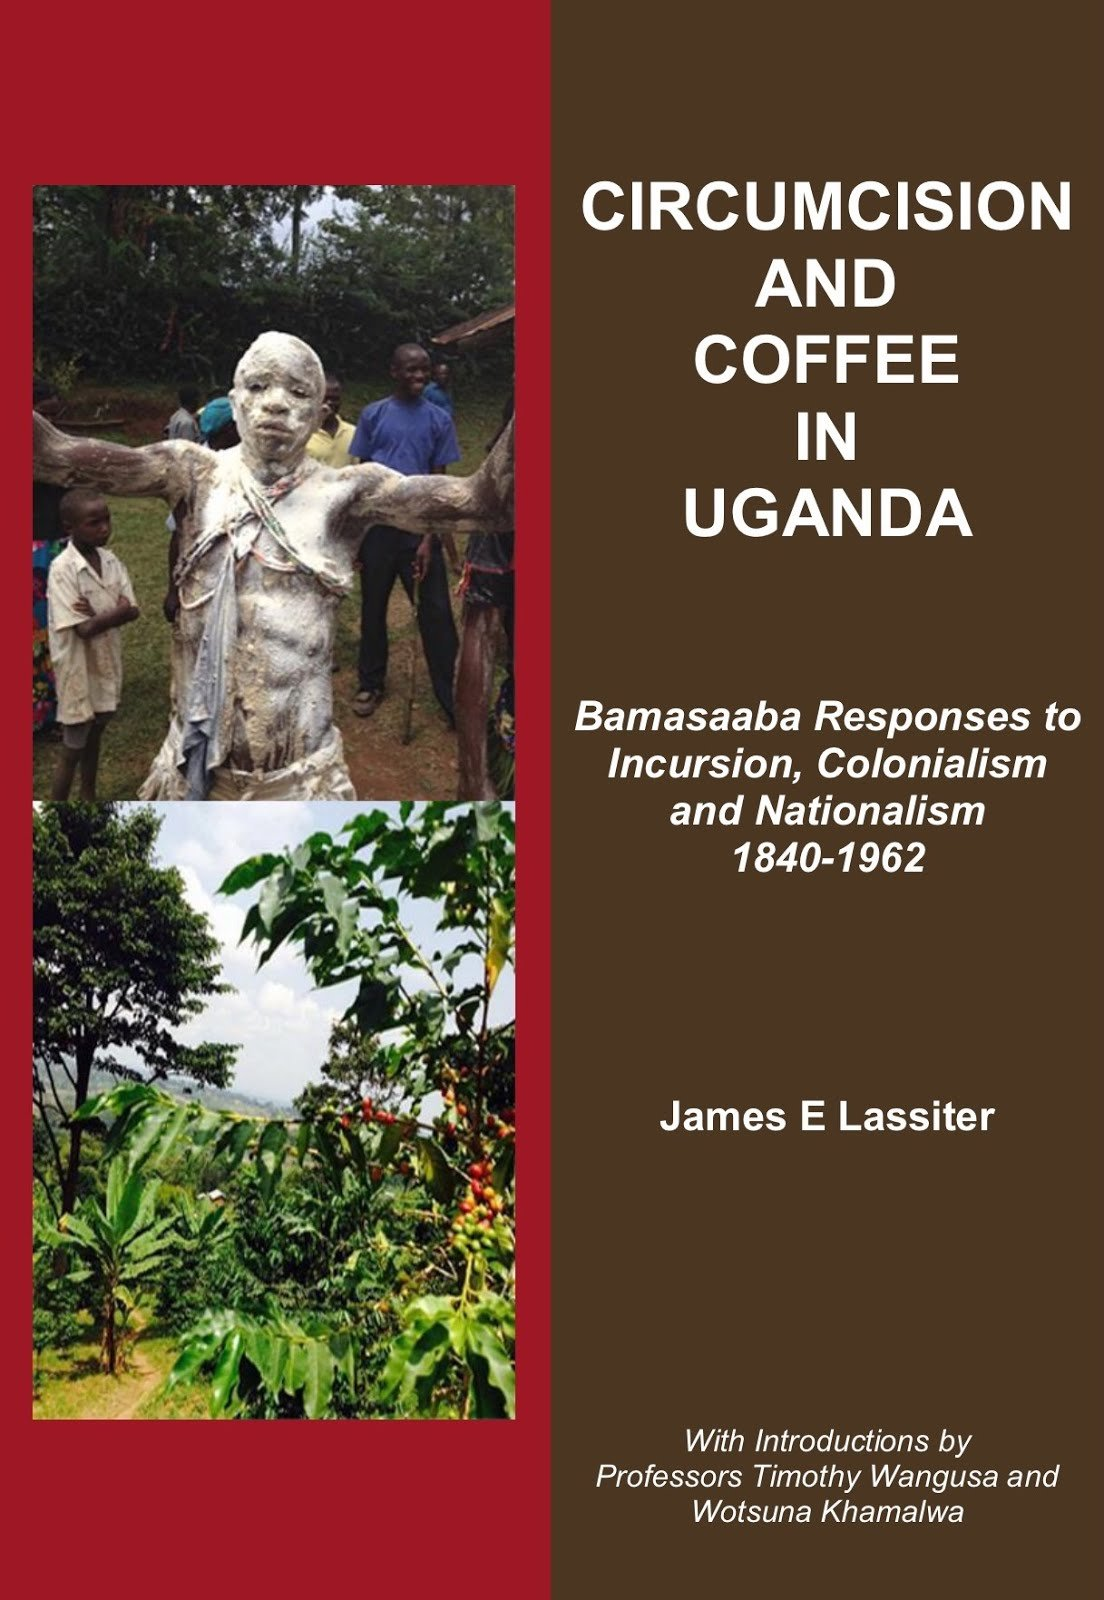 Circumcision and Coffee in Uganda: Bamassaba Responses to Incursion, Colonialism and Nationalism